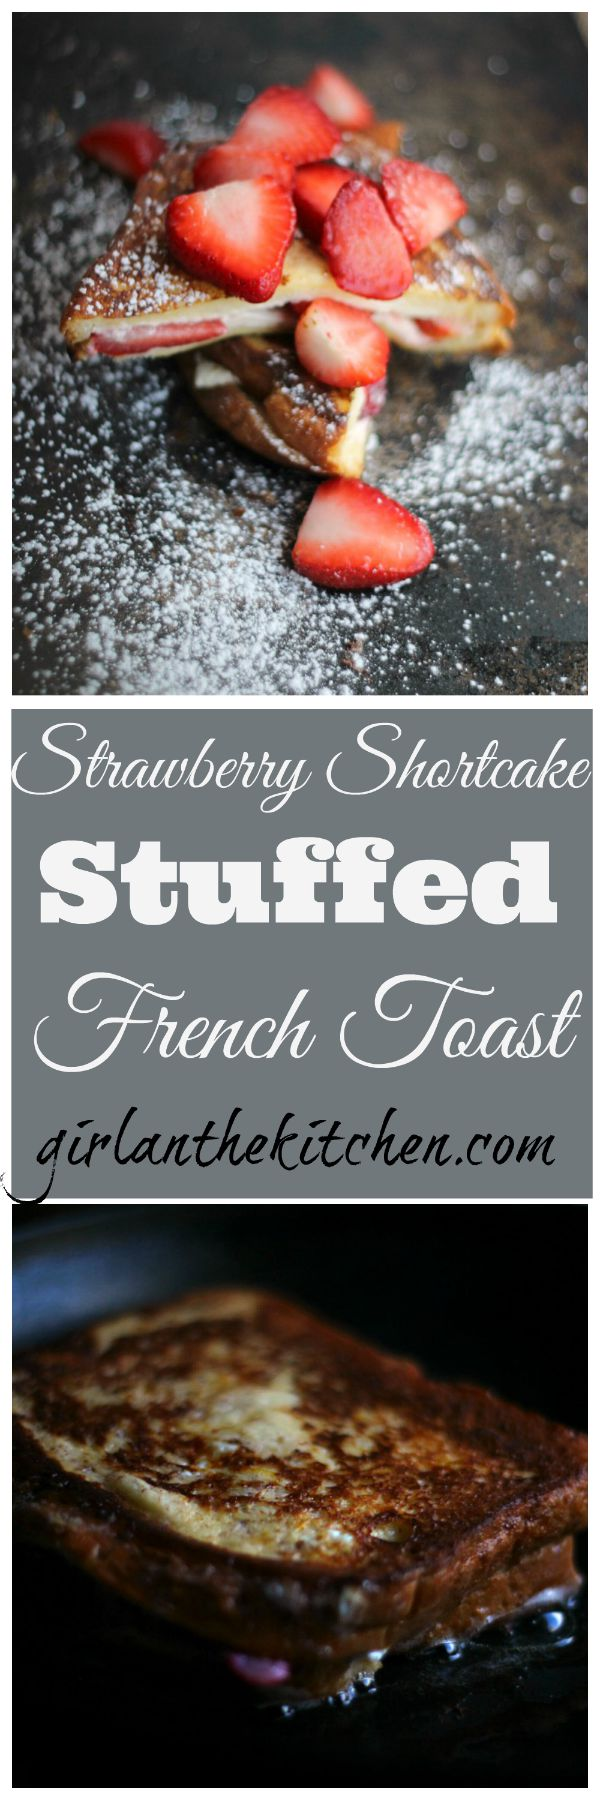 A delicious twist on the classic French toast breakfast favorite! Full of juicy strawberries and sweet cream cheese this stuffed French toast is perfect for an elegant brunch or a fun breakfast at home!